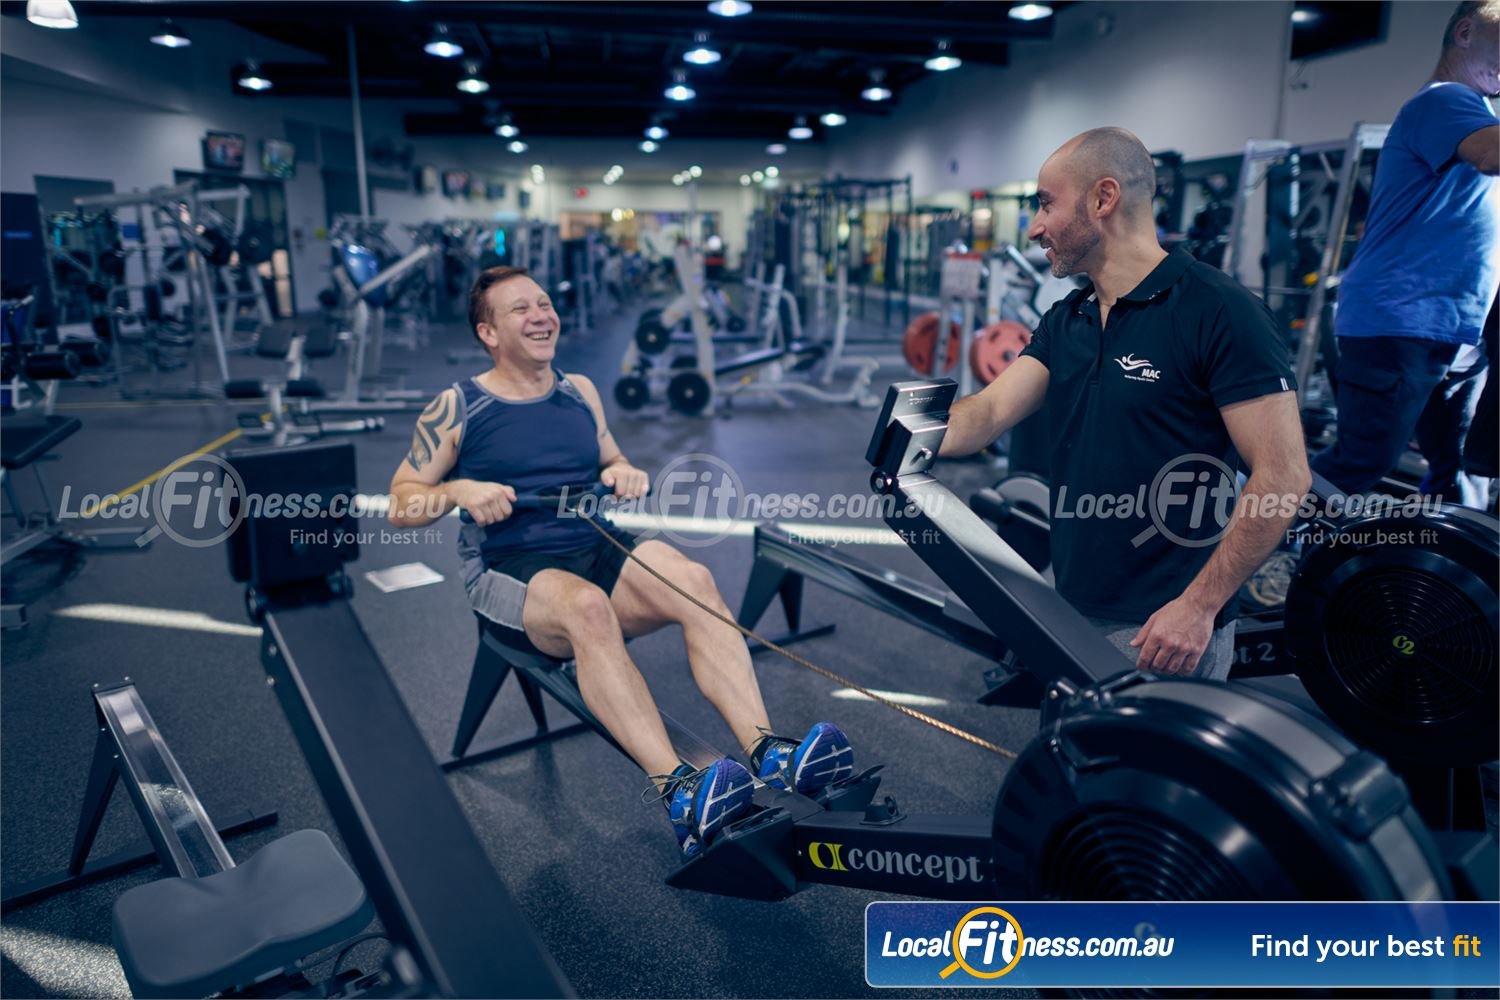 Maribyrnong Aquatic Centre Maribyrnong Vary your cardio workout to includes high-intensity indoor rowing.